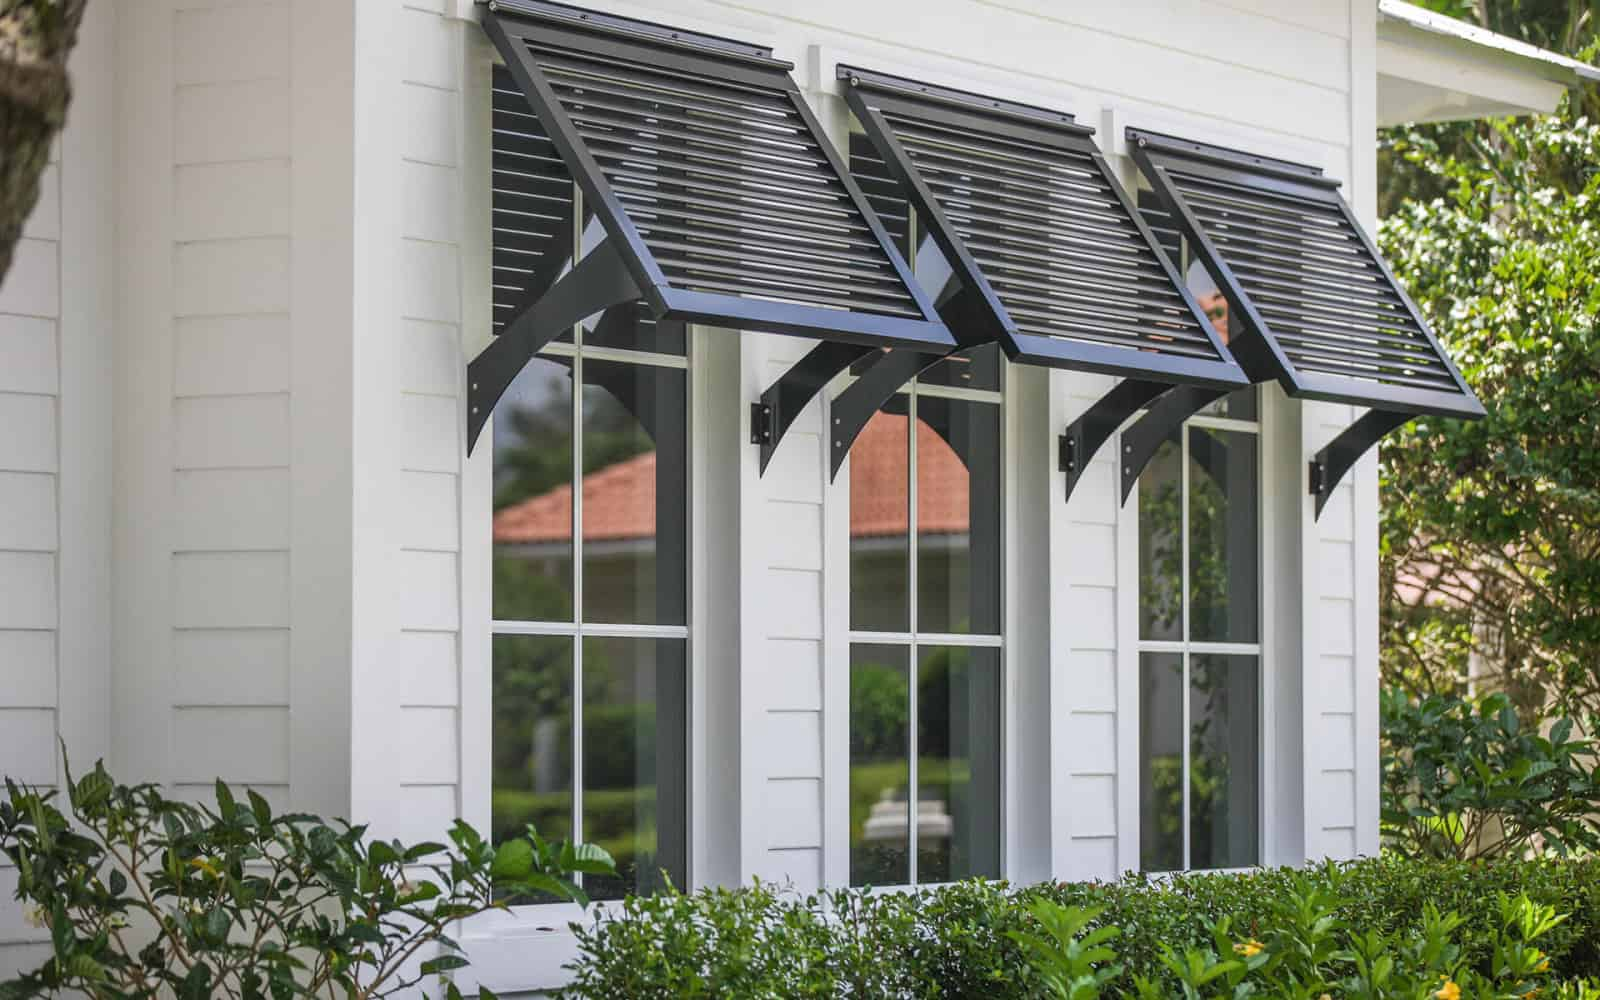 Bahama shutters by marc julien homes - Pictures of exterior shutters on homes ...